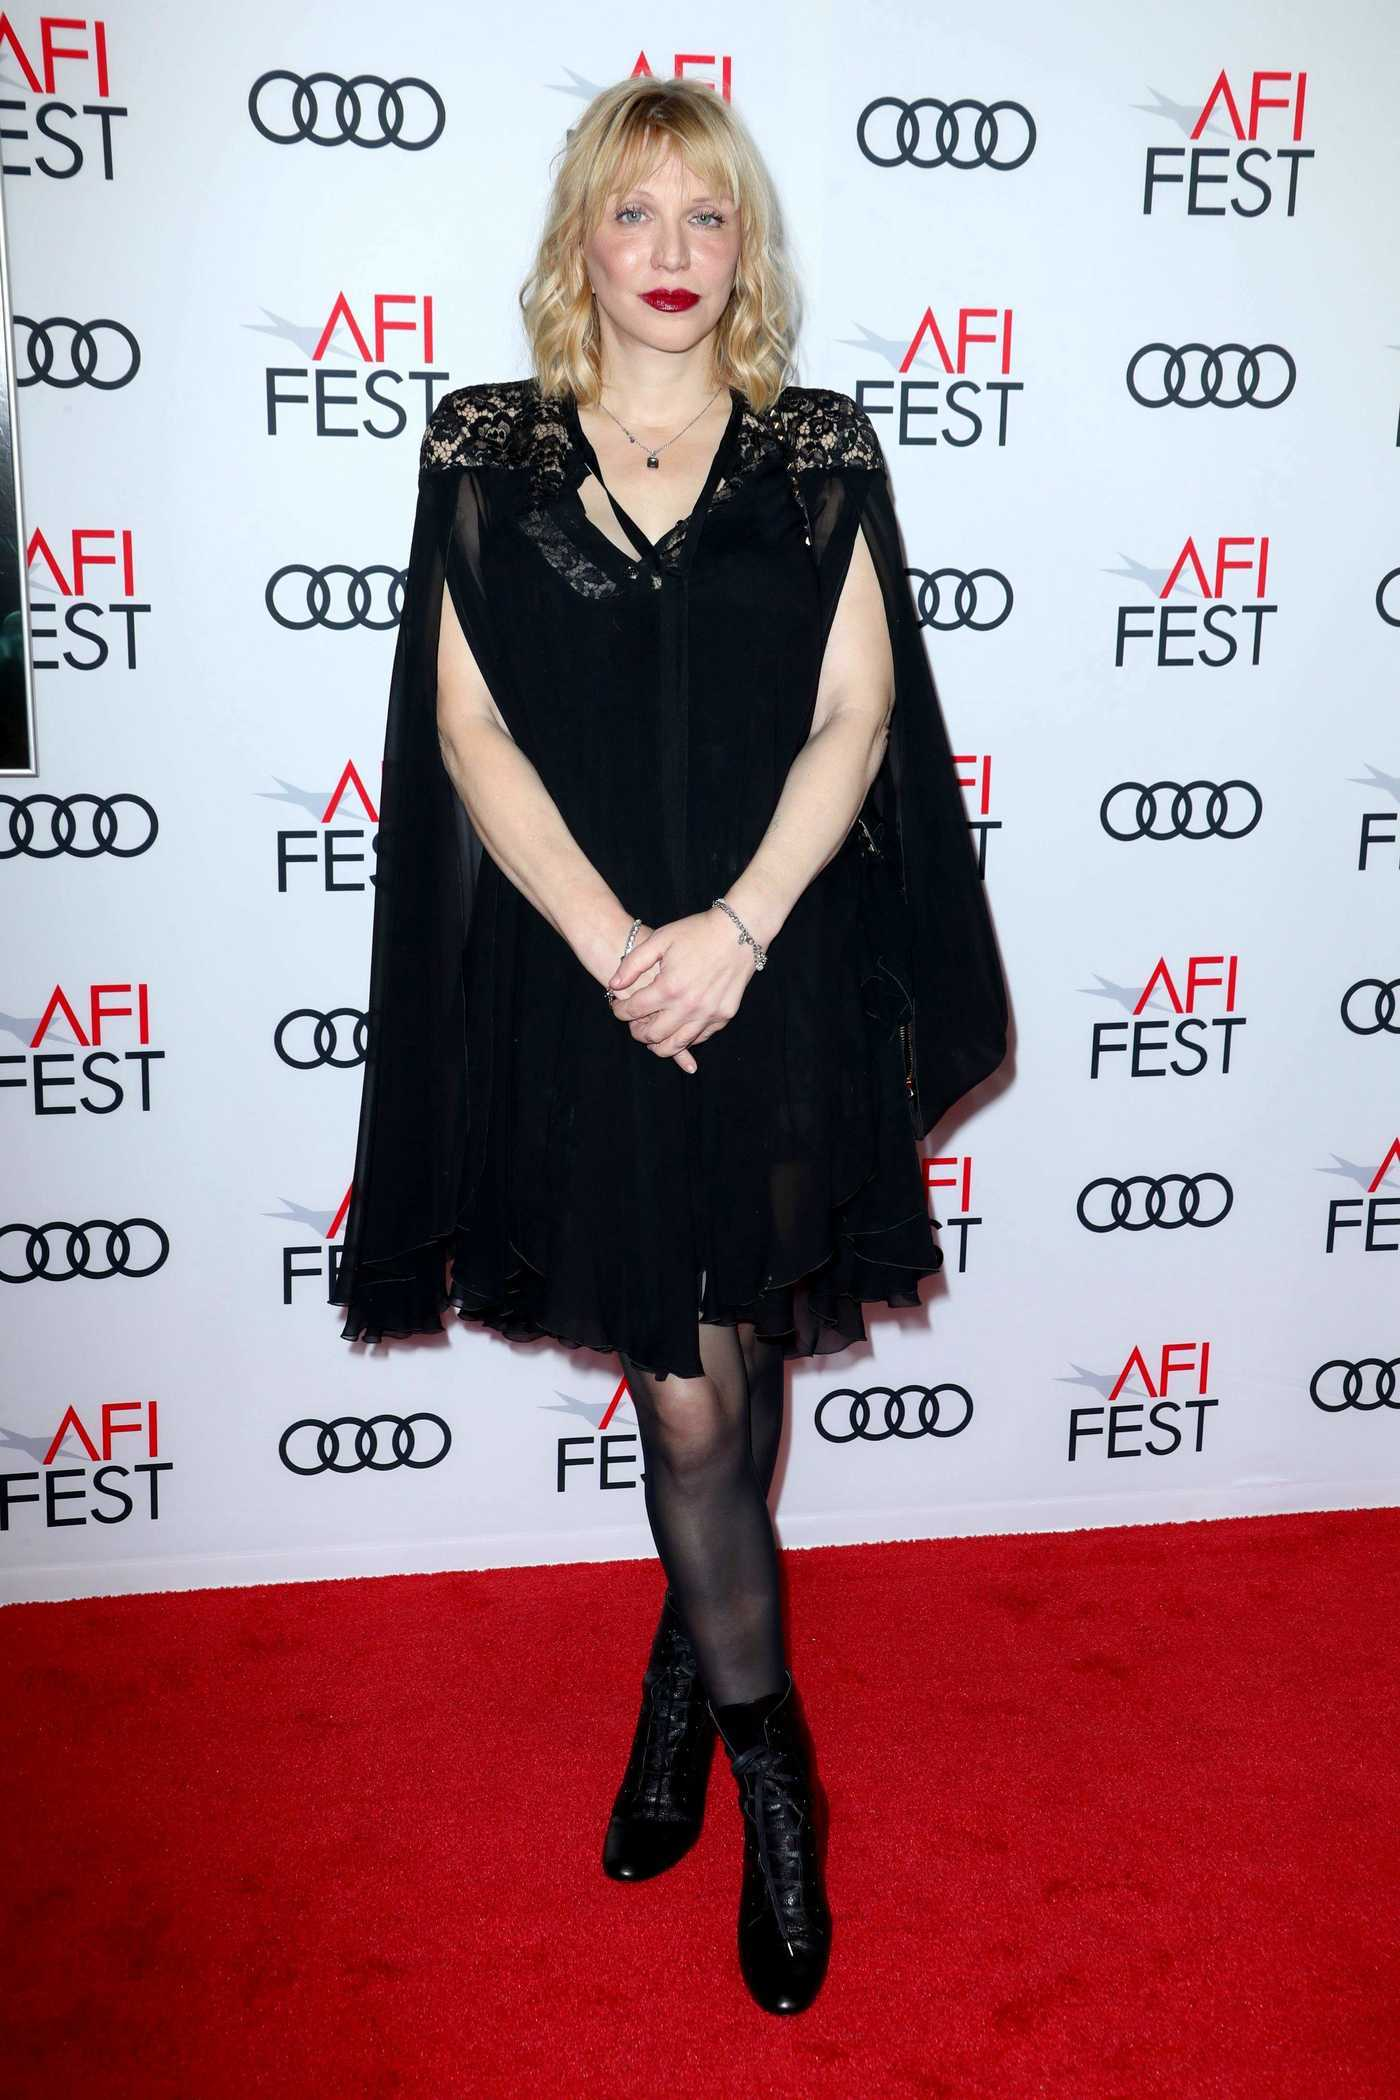 Courtney Love at The Disaster Artist Screening During AFI Festival in Los Angeles 11/12/2017